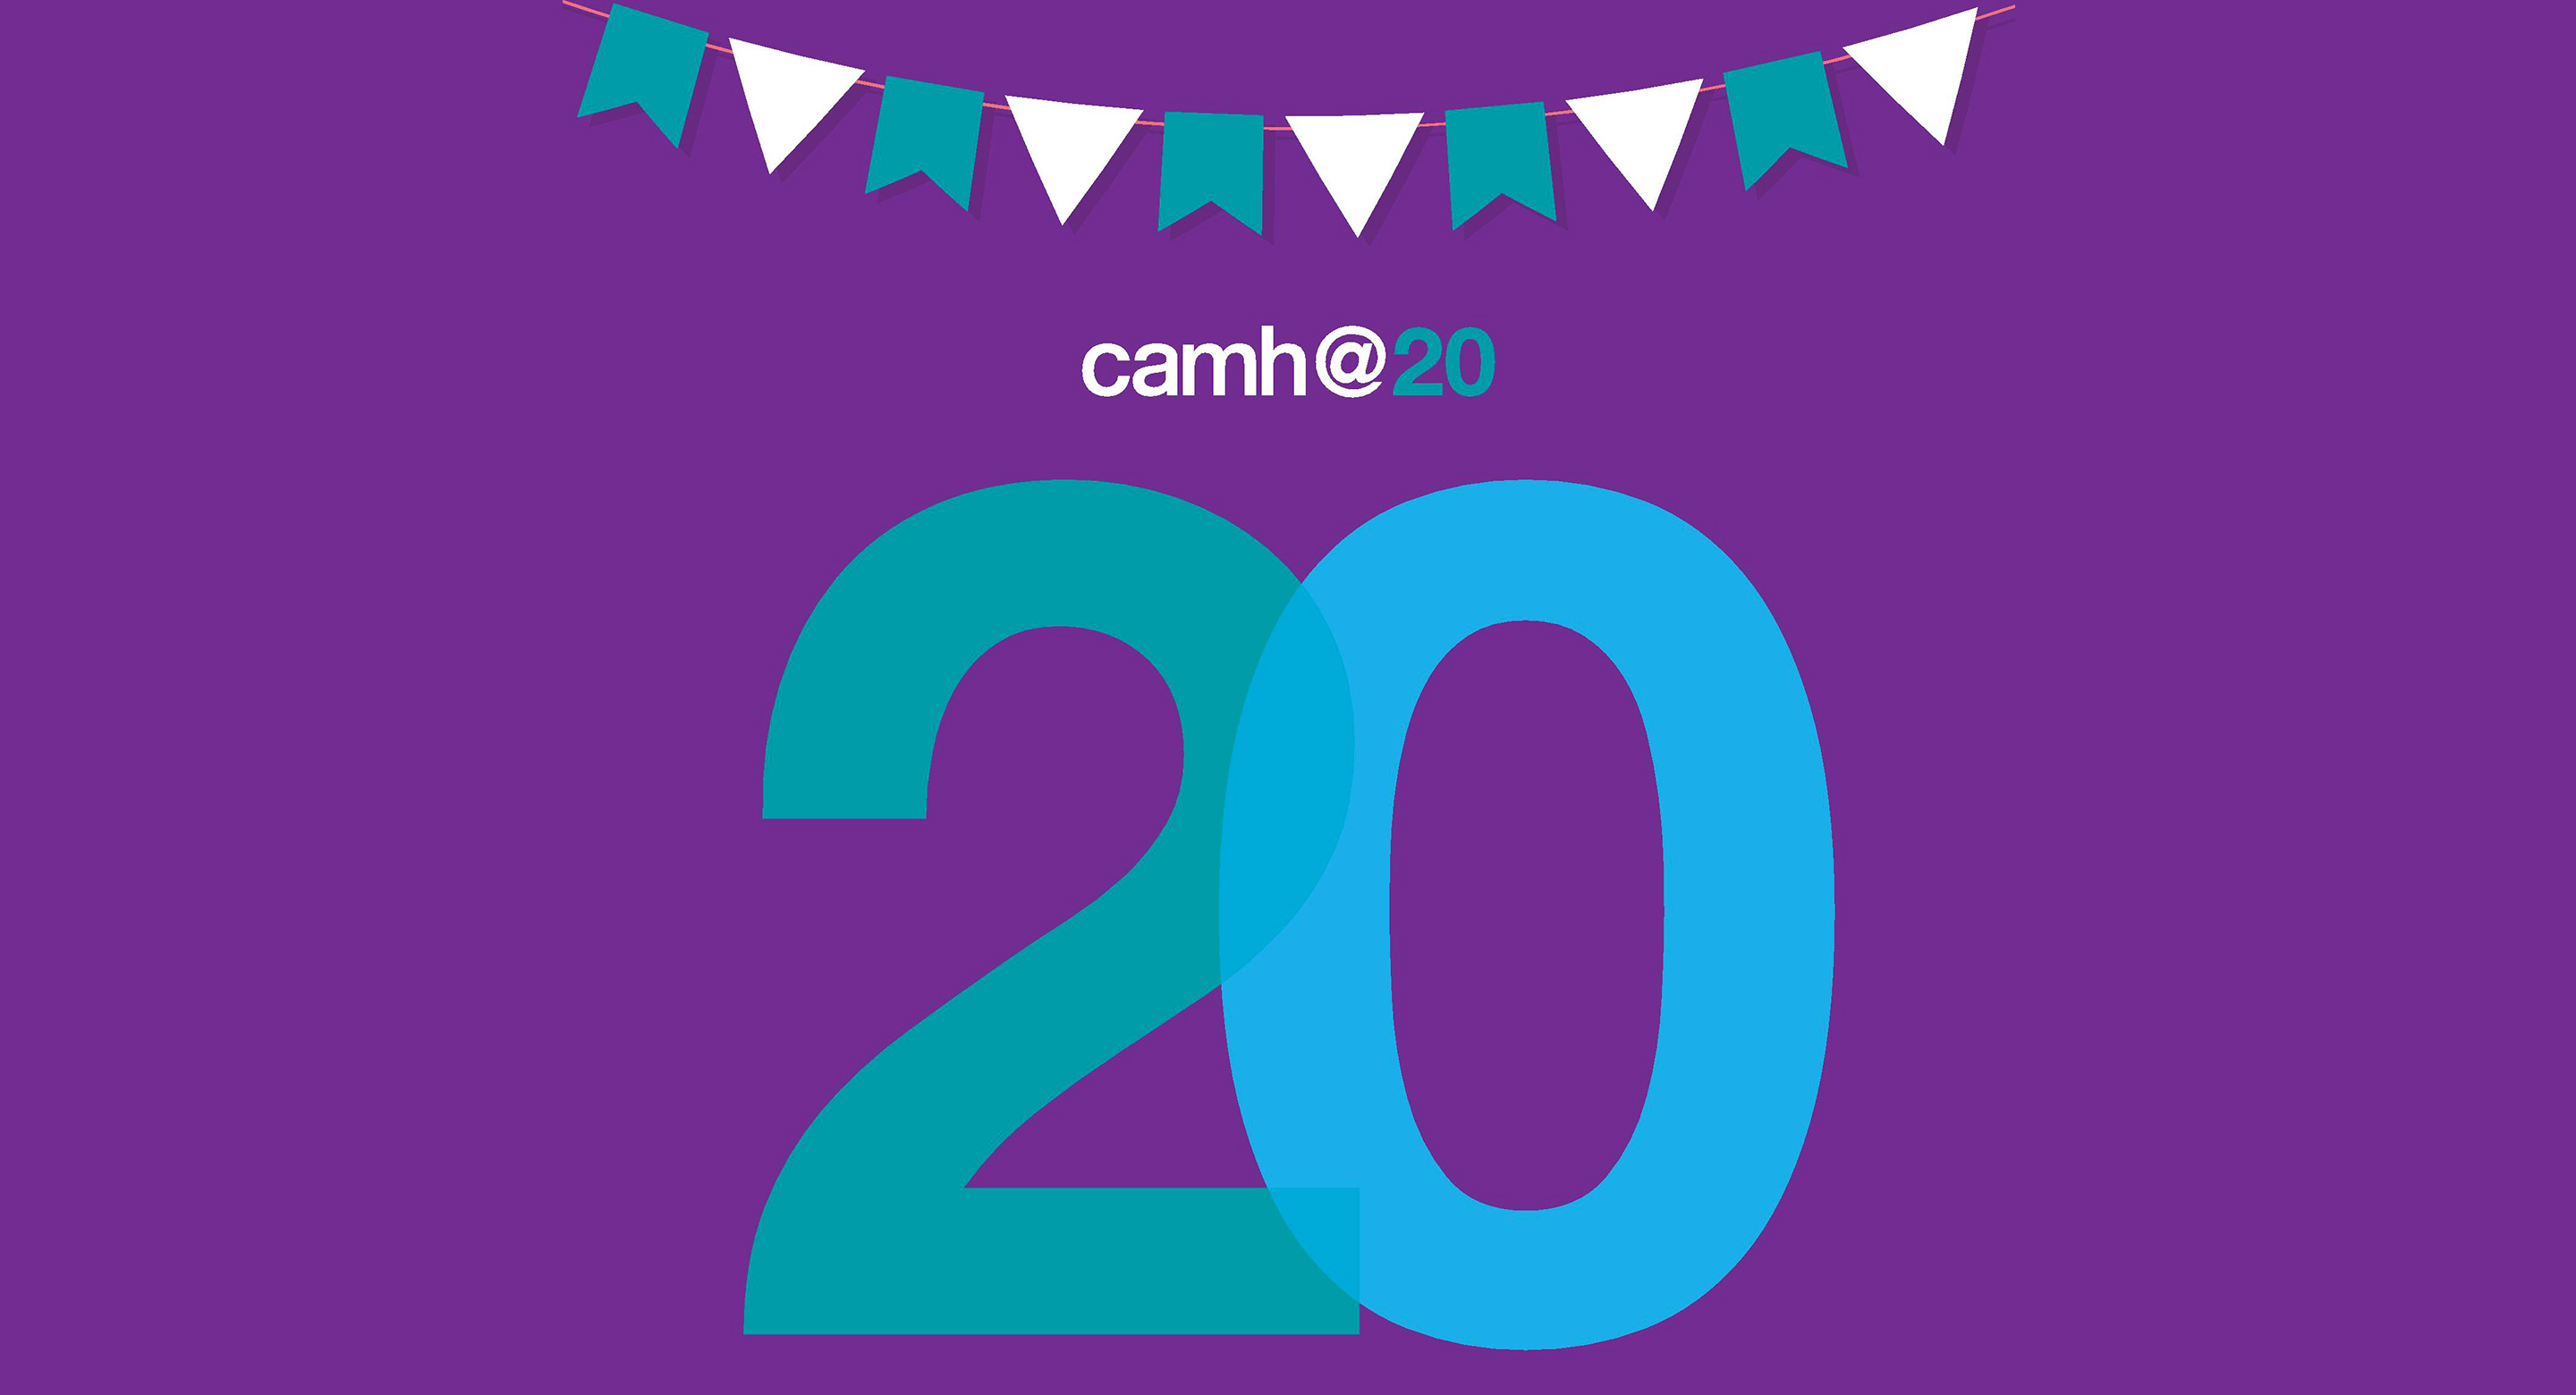 CAMH turns 20 graphic